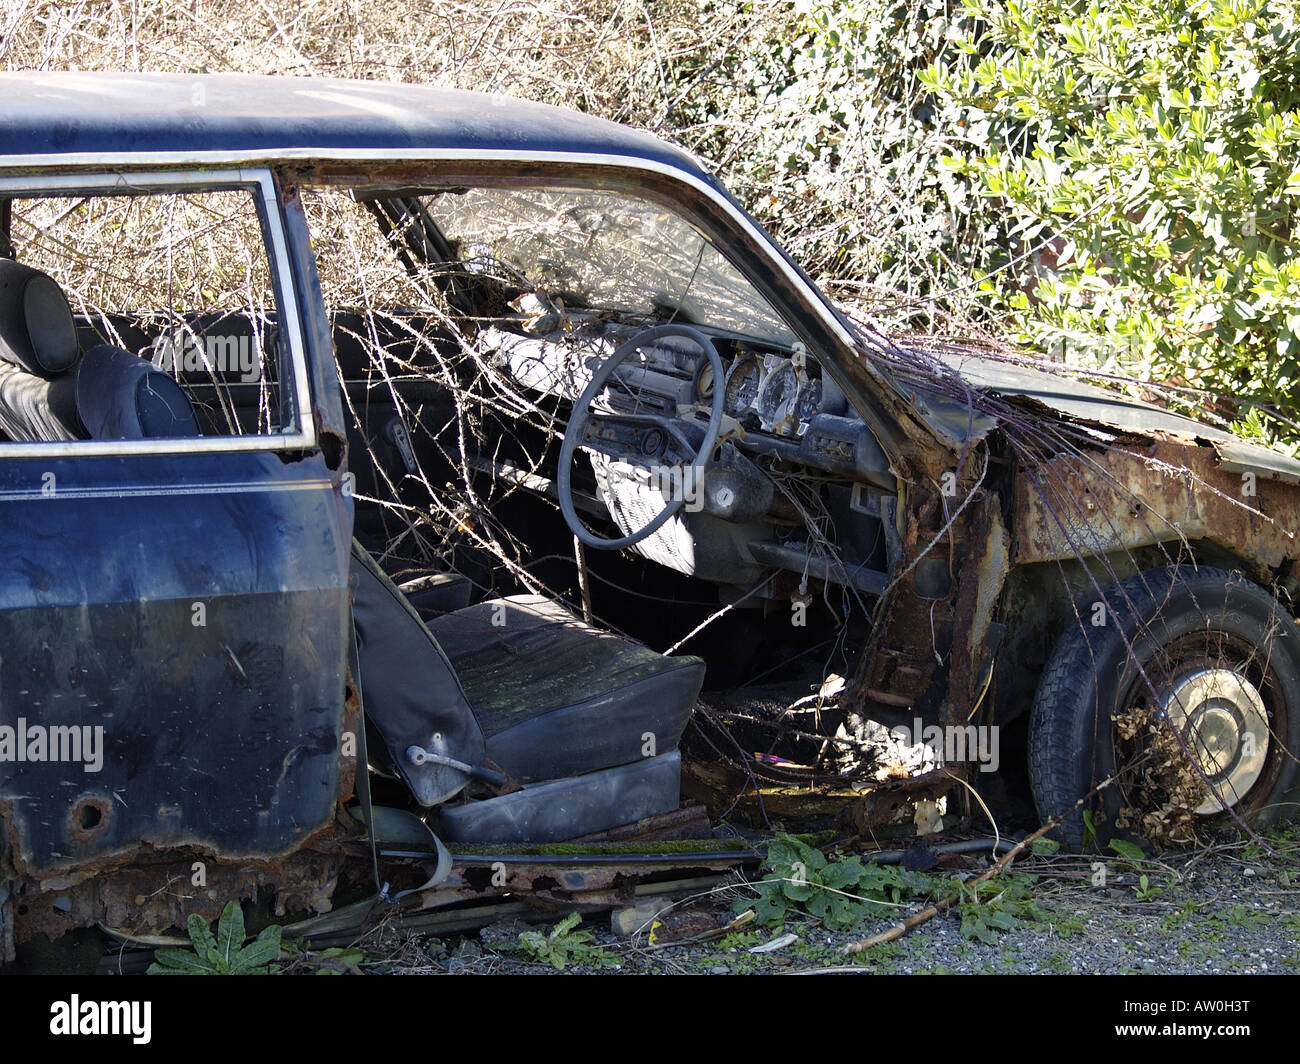 Abandoned car with brambles growing through it - Stock Image